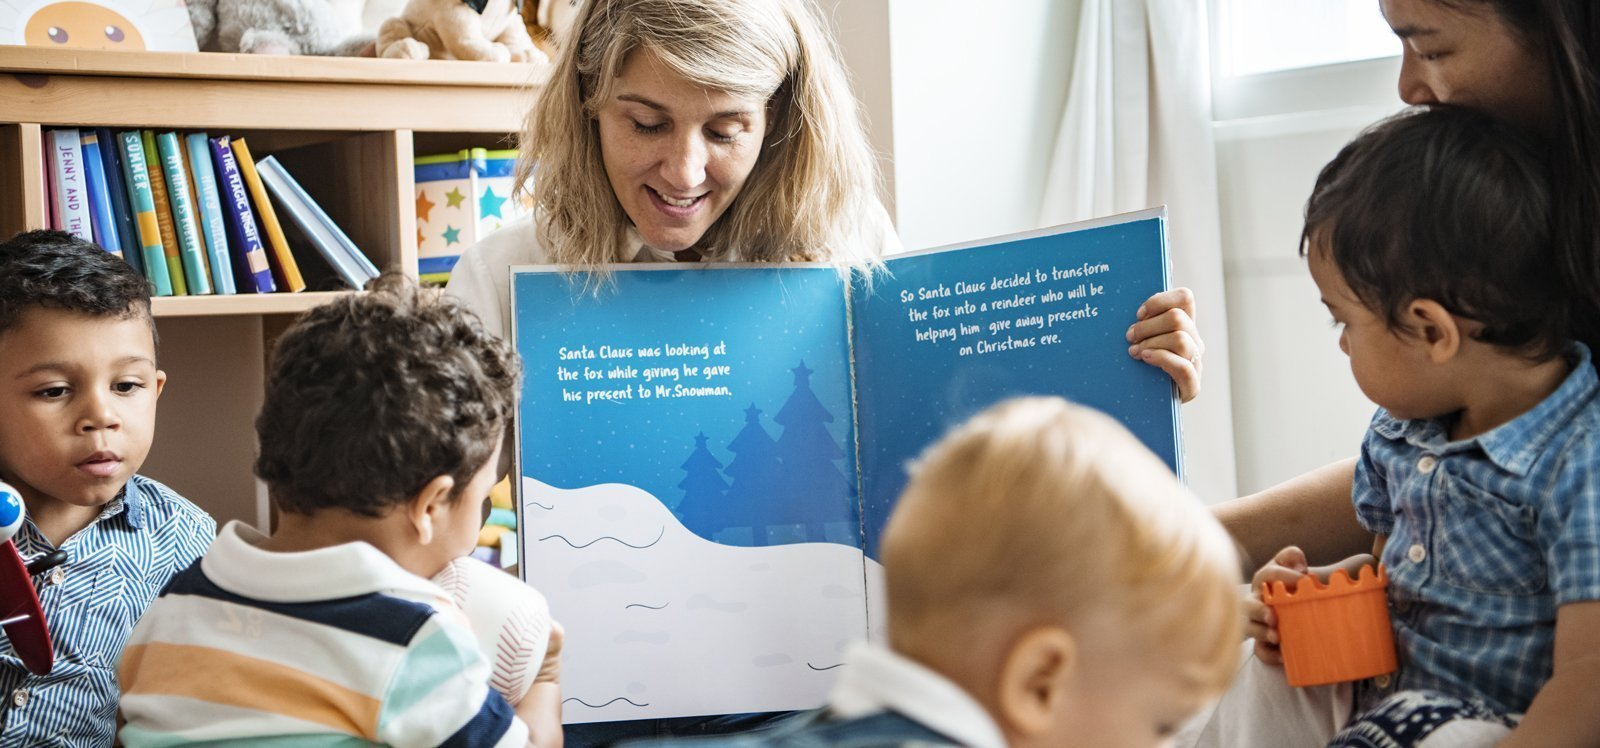 Middle aged pre-school teacher reading to young children.